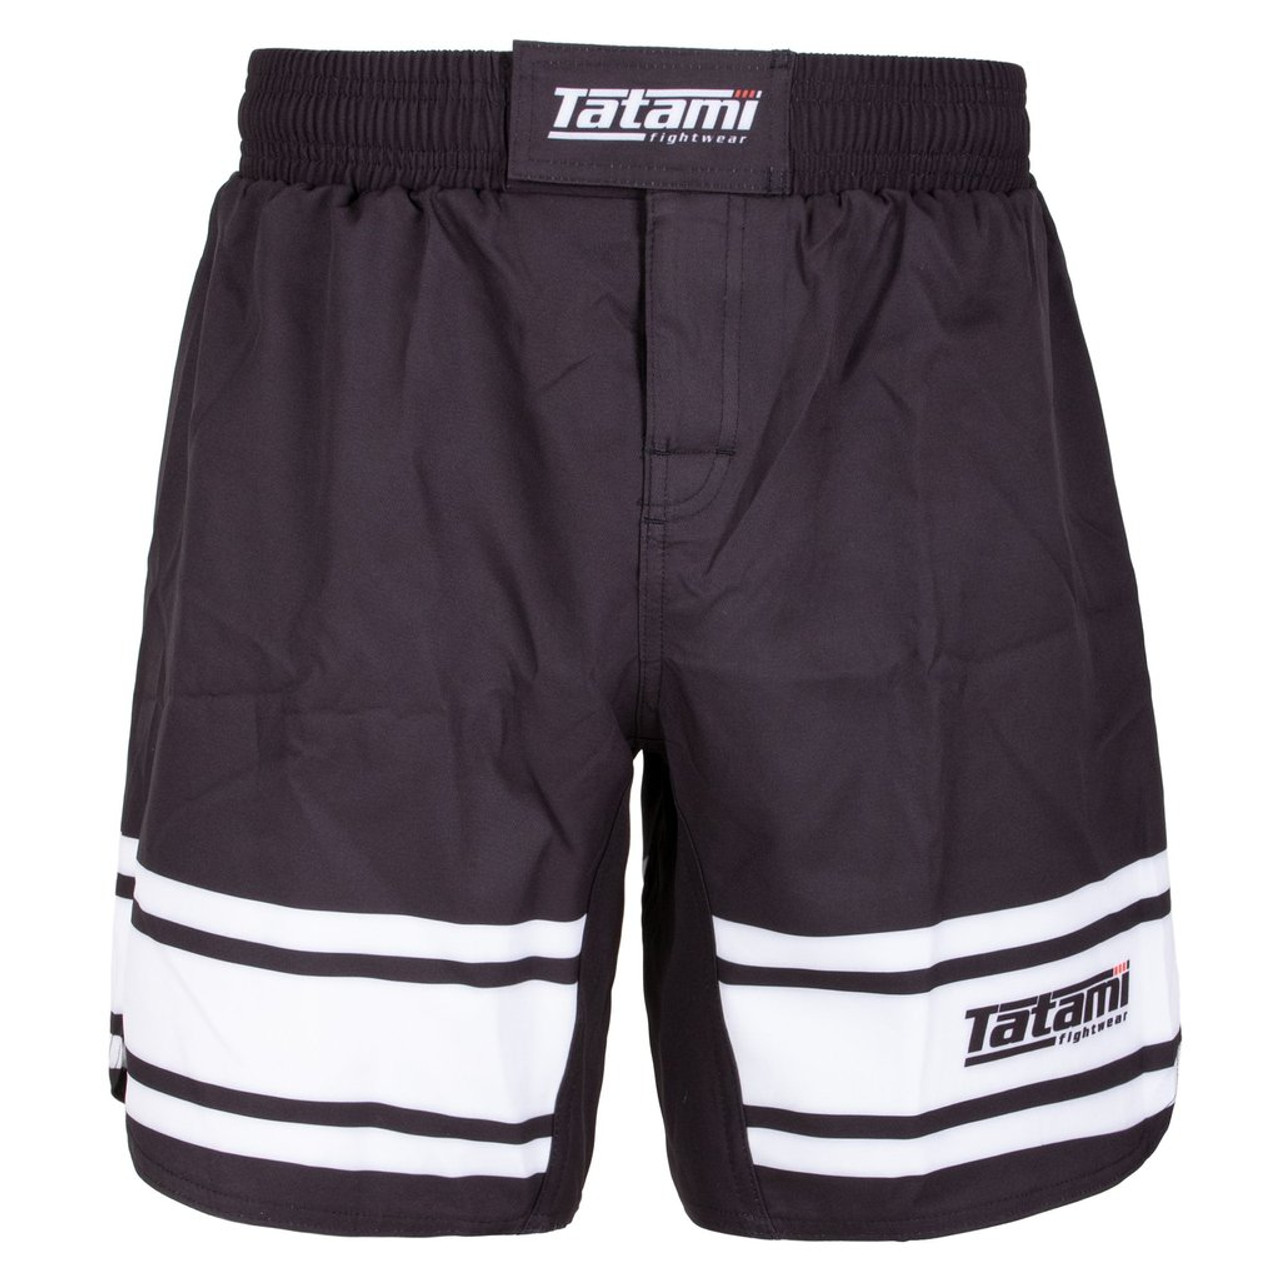 Black Tatami Fightwear Kids Shadow No Gi Shorts